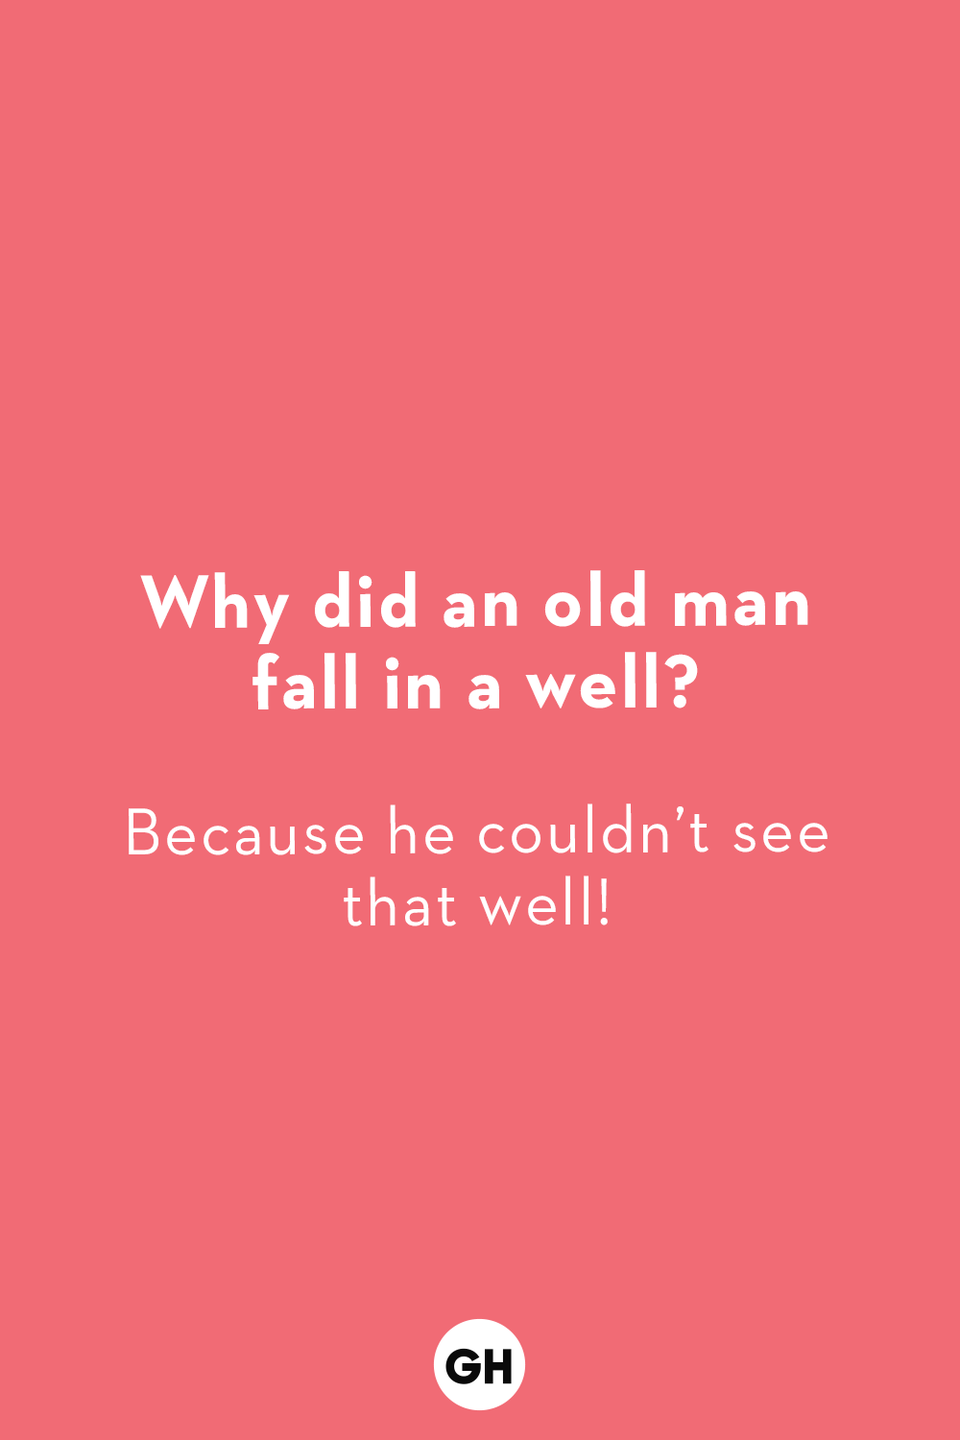 <p>Because he couldn't see that well!</p>